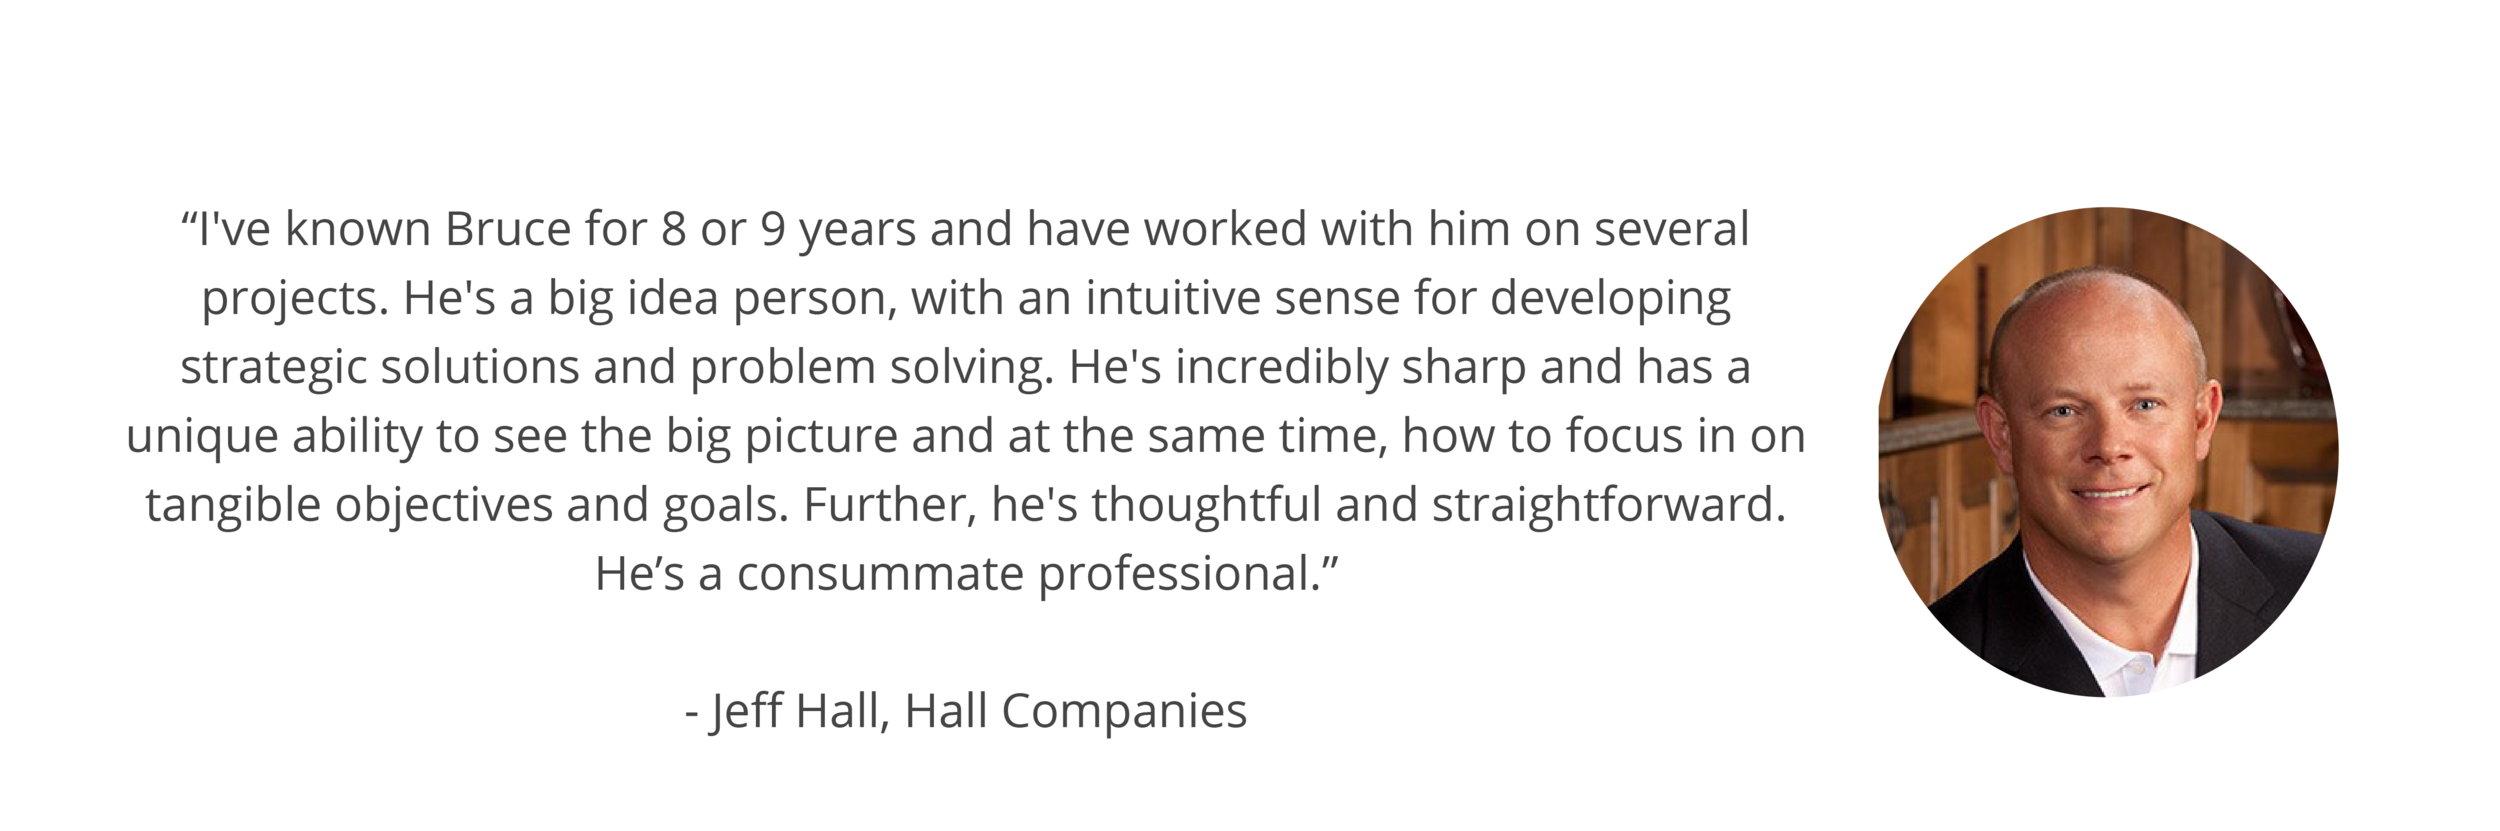 jim-hall-testimonial-2.png